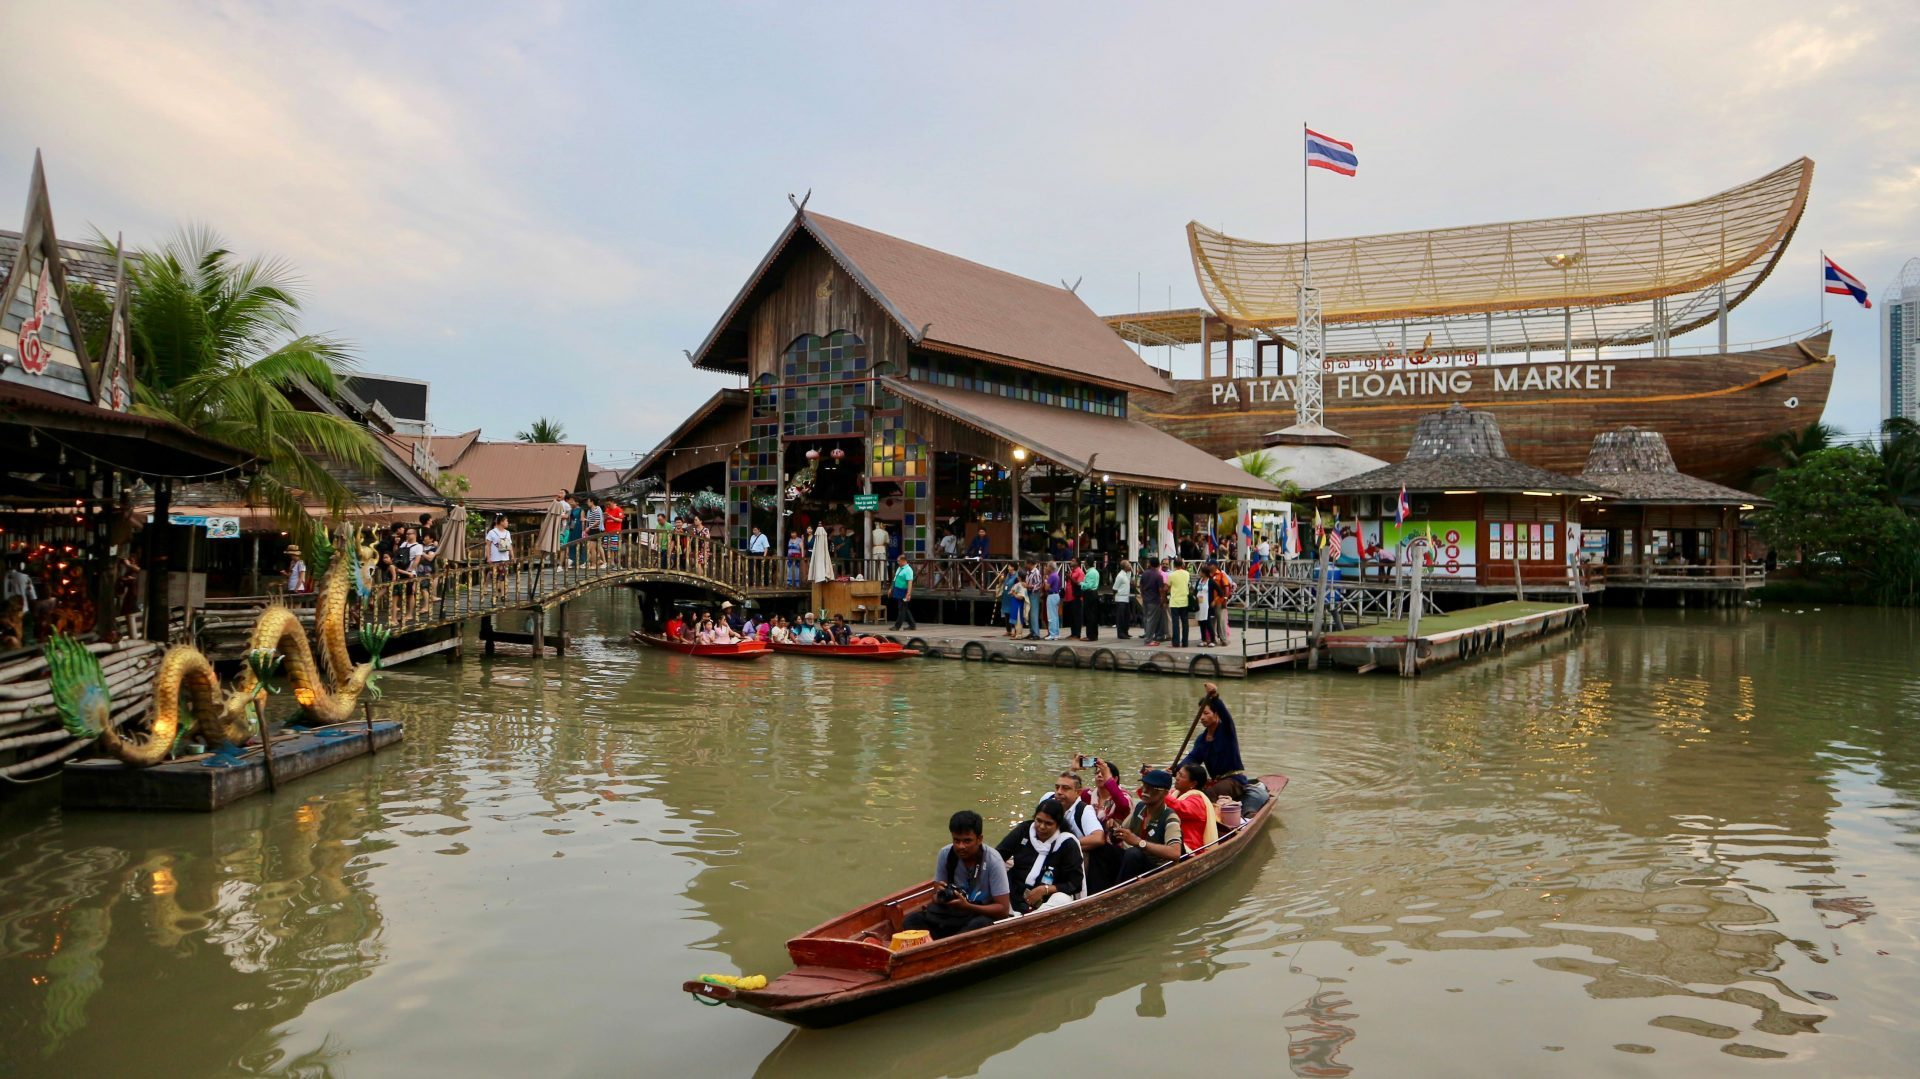 Pattaya Floating Market, another destination in my second day of Bangkok and Pattaya trip.